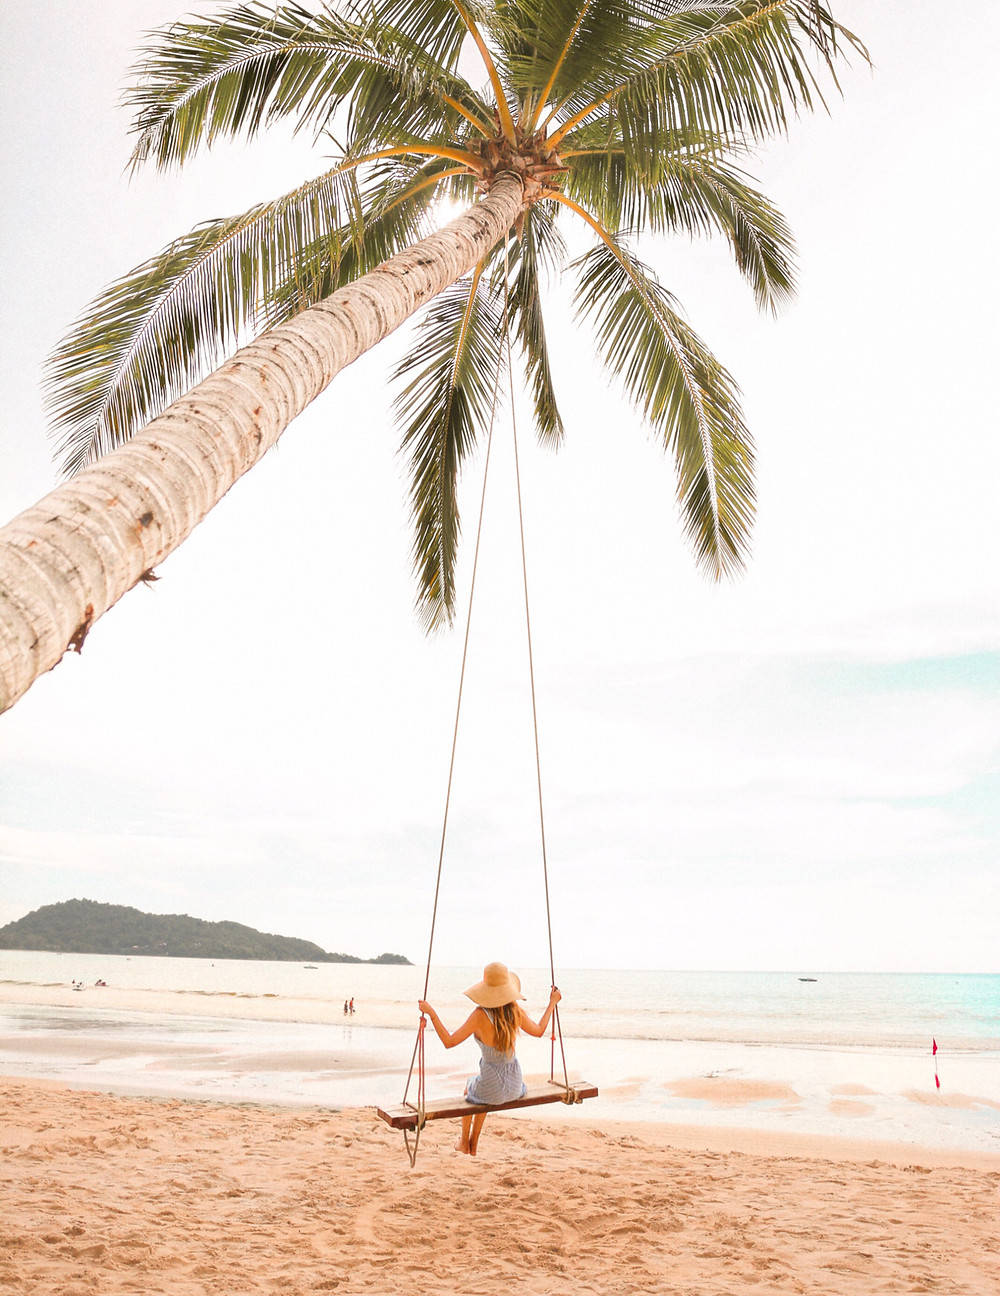 swing on palm tree on Kata beach, Phuket